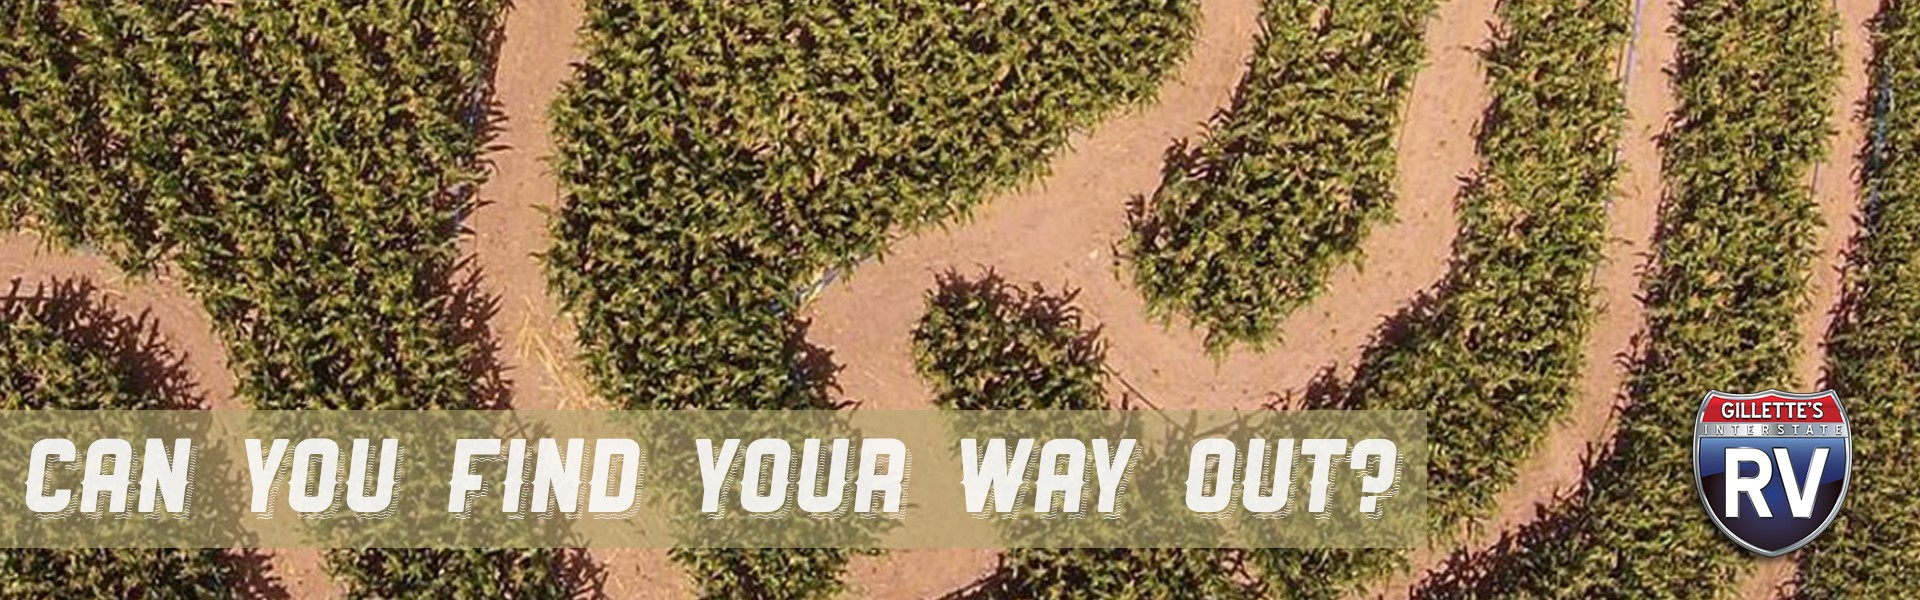 Can you find your way out? Corn maze